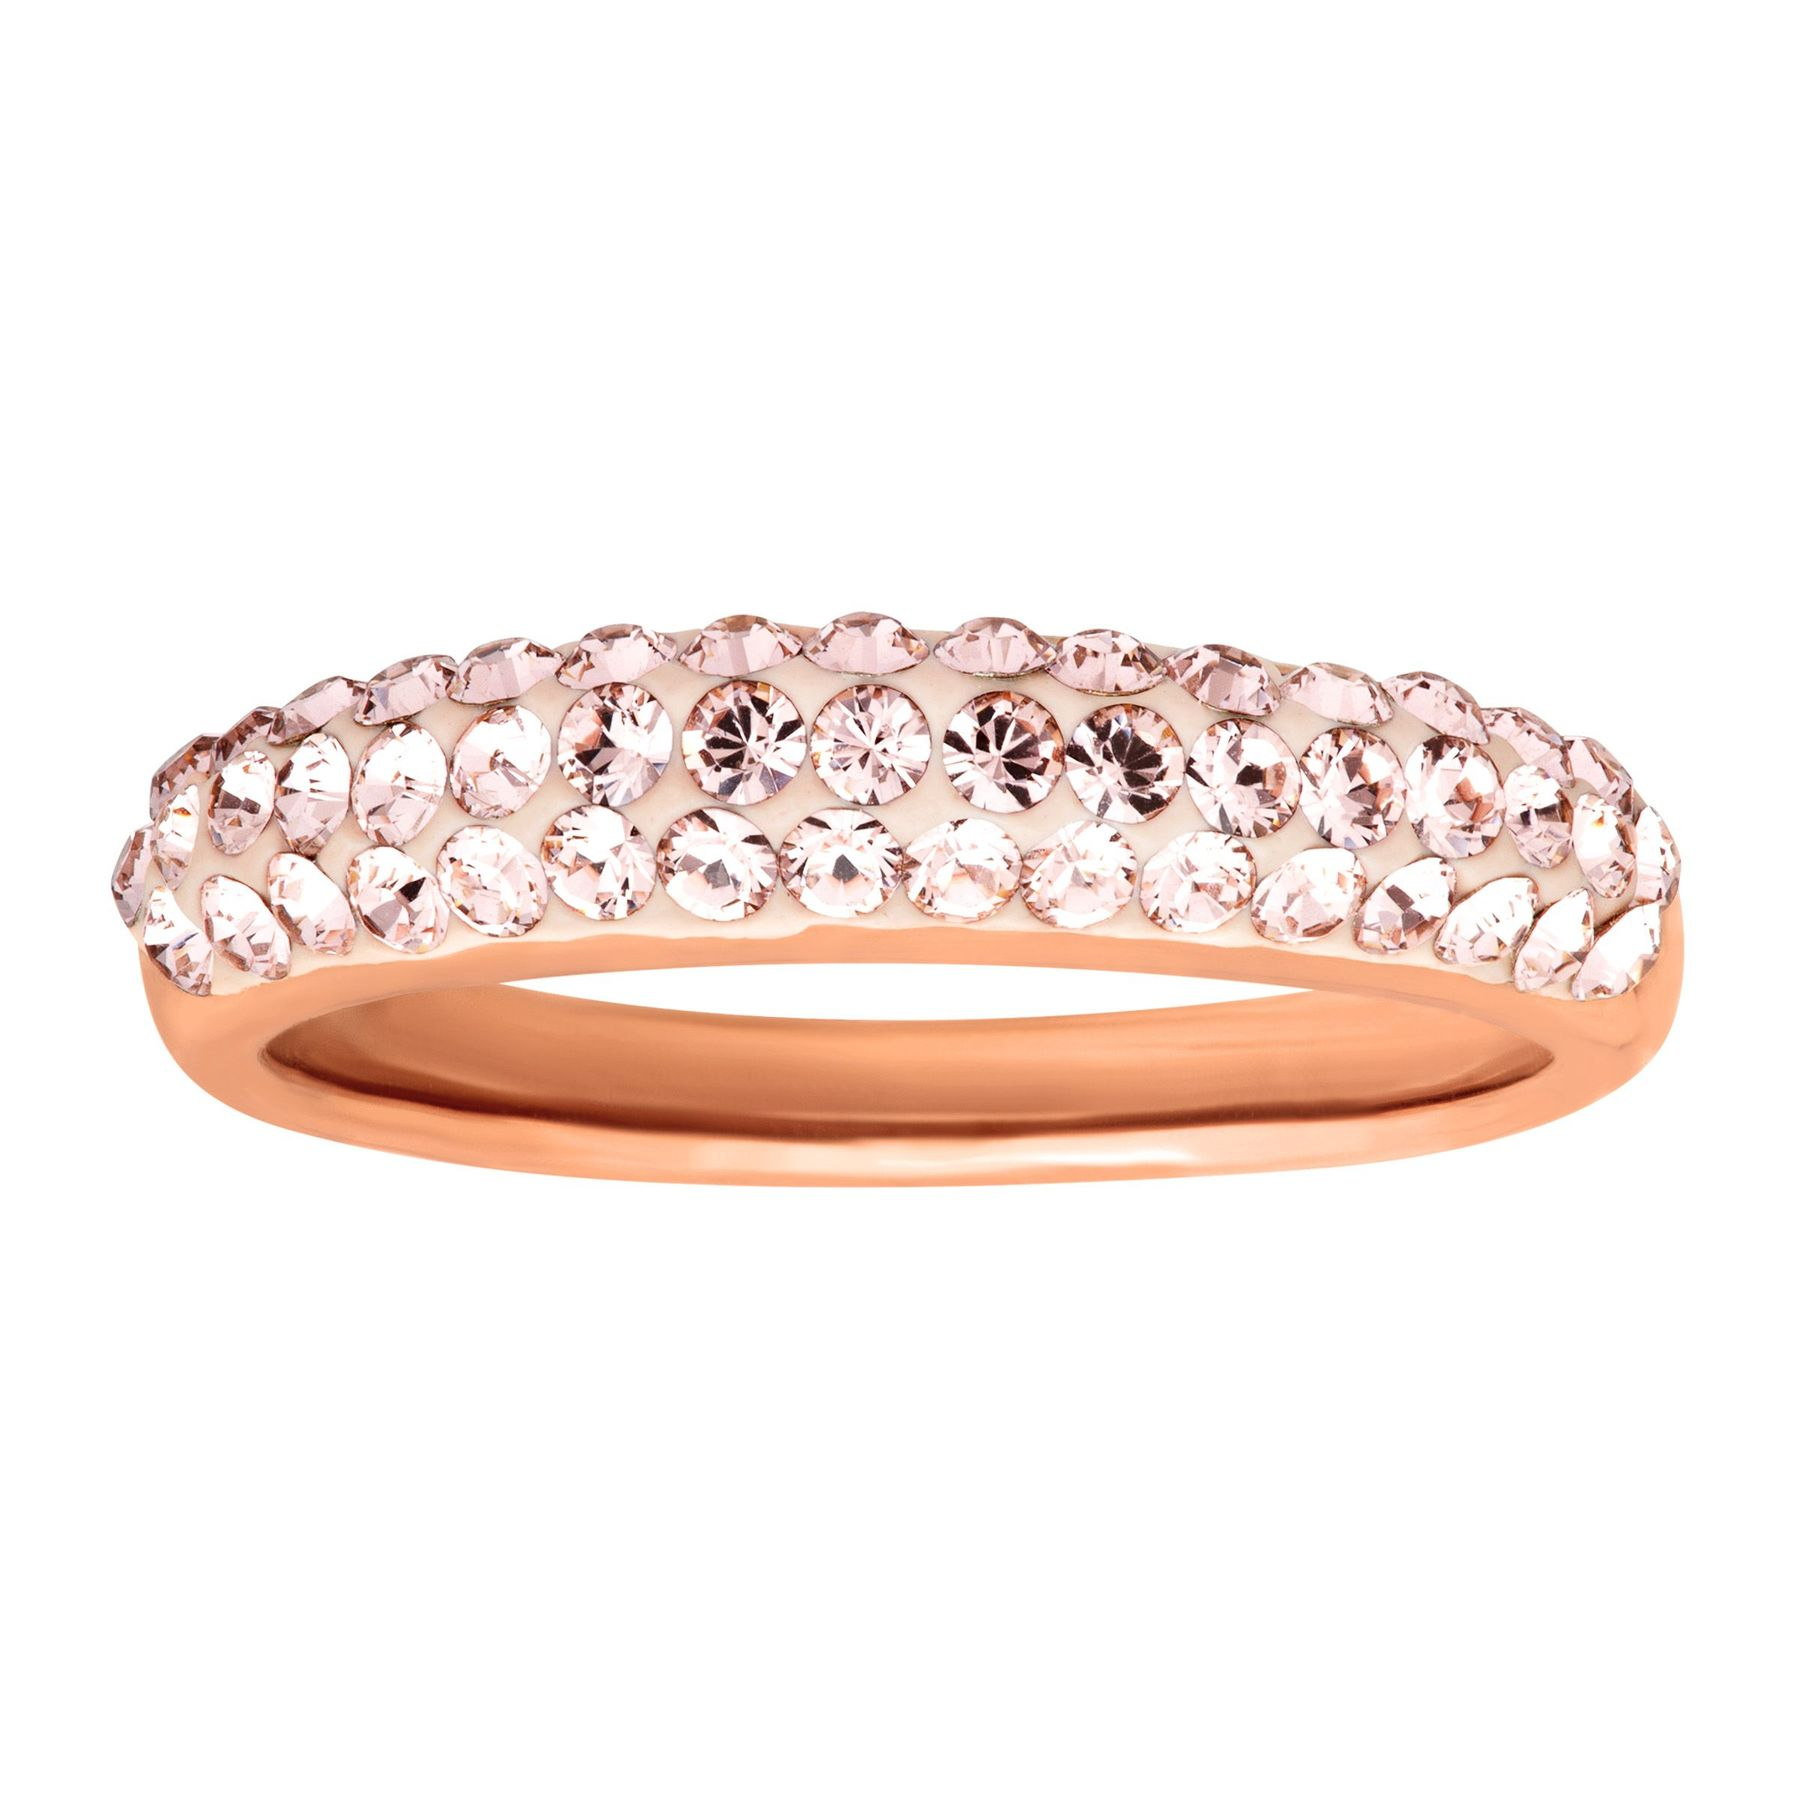 ad9dfc0ba Crystaluxe Band Ring with Vintage Rose Swarovski Crystals in 14K ...